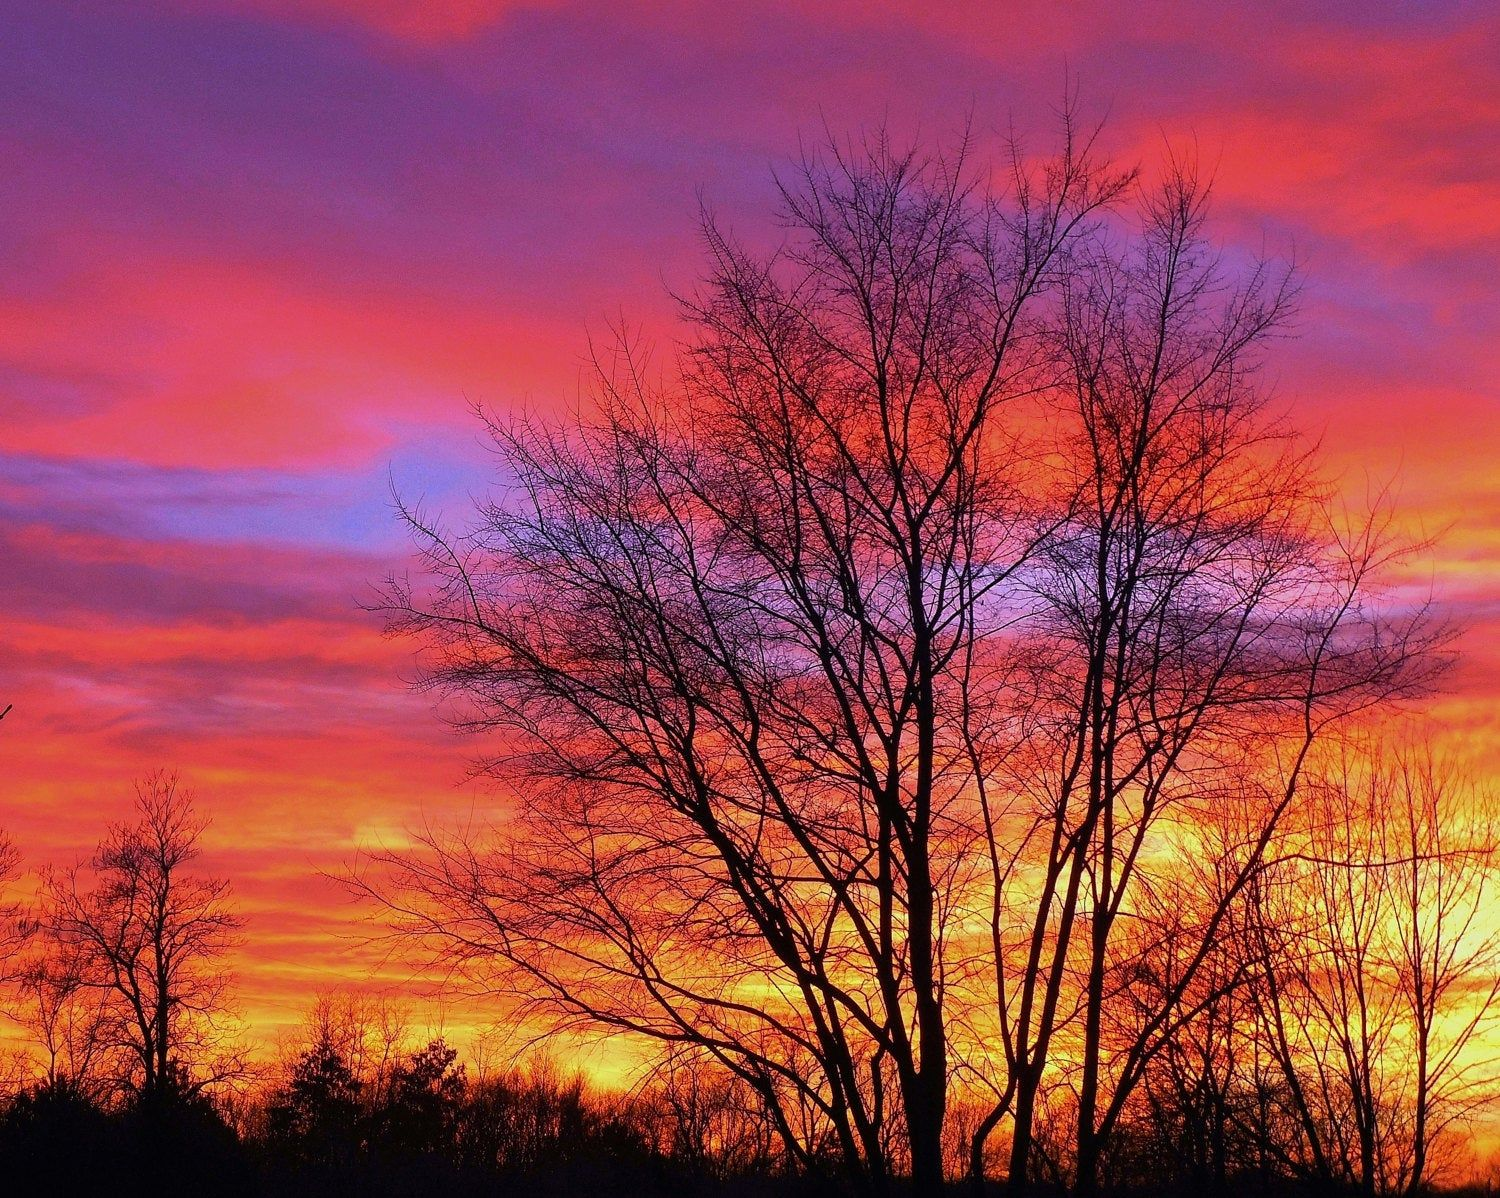 Winter Sunset Nature Photography Michigan Photography Sunset Winter Sunset Landscape Horizon Silhouette Red Sunset Red Sky At Night In 2020 Sunset Photography Nature Nature Photography Winter Sunset